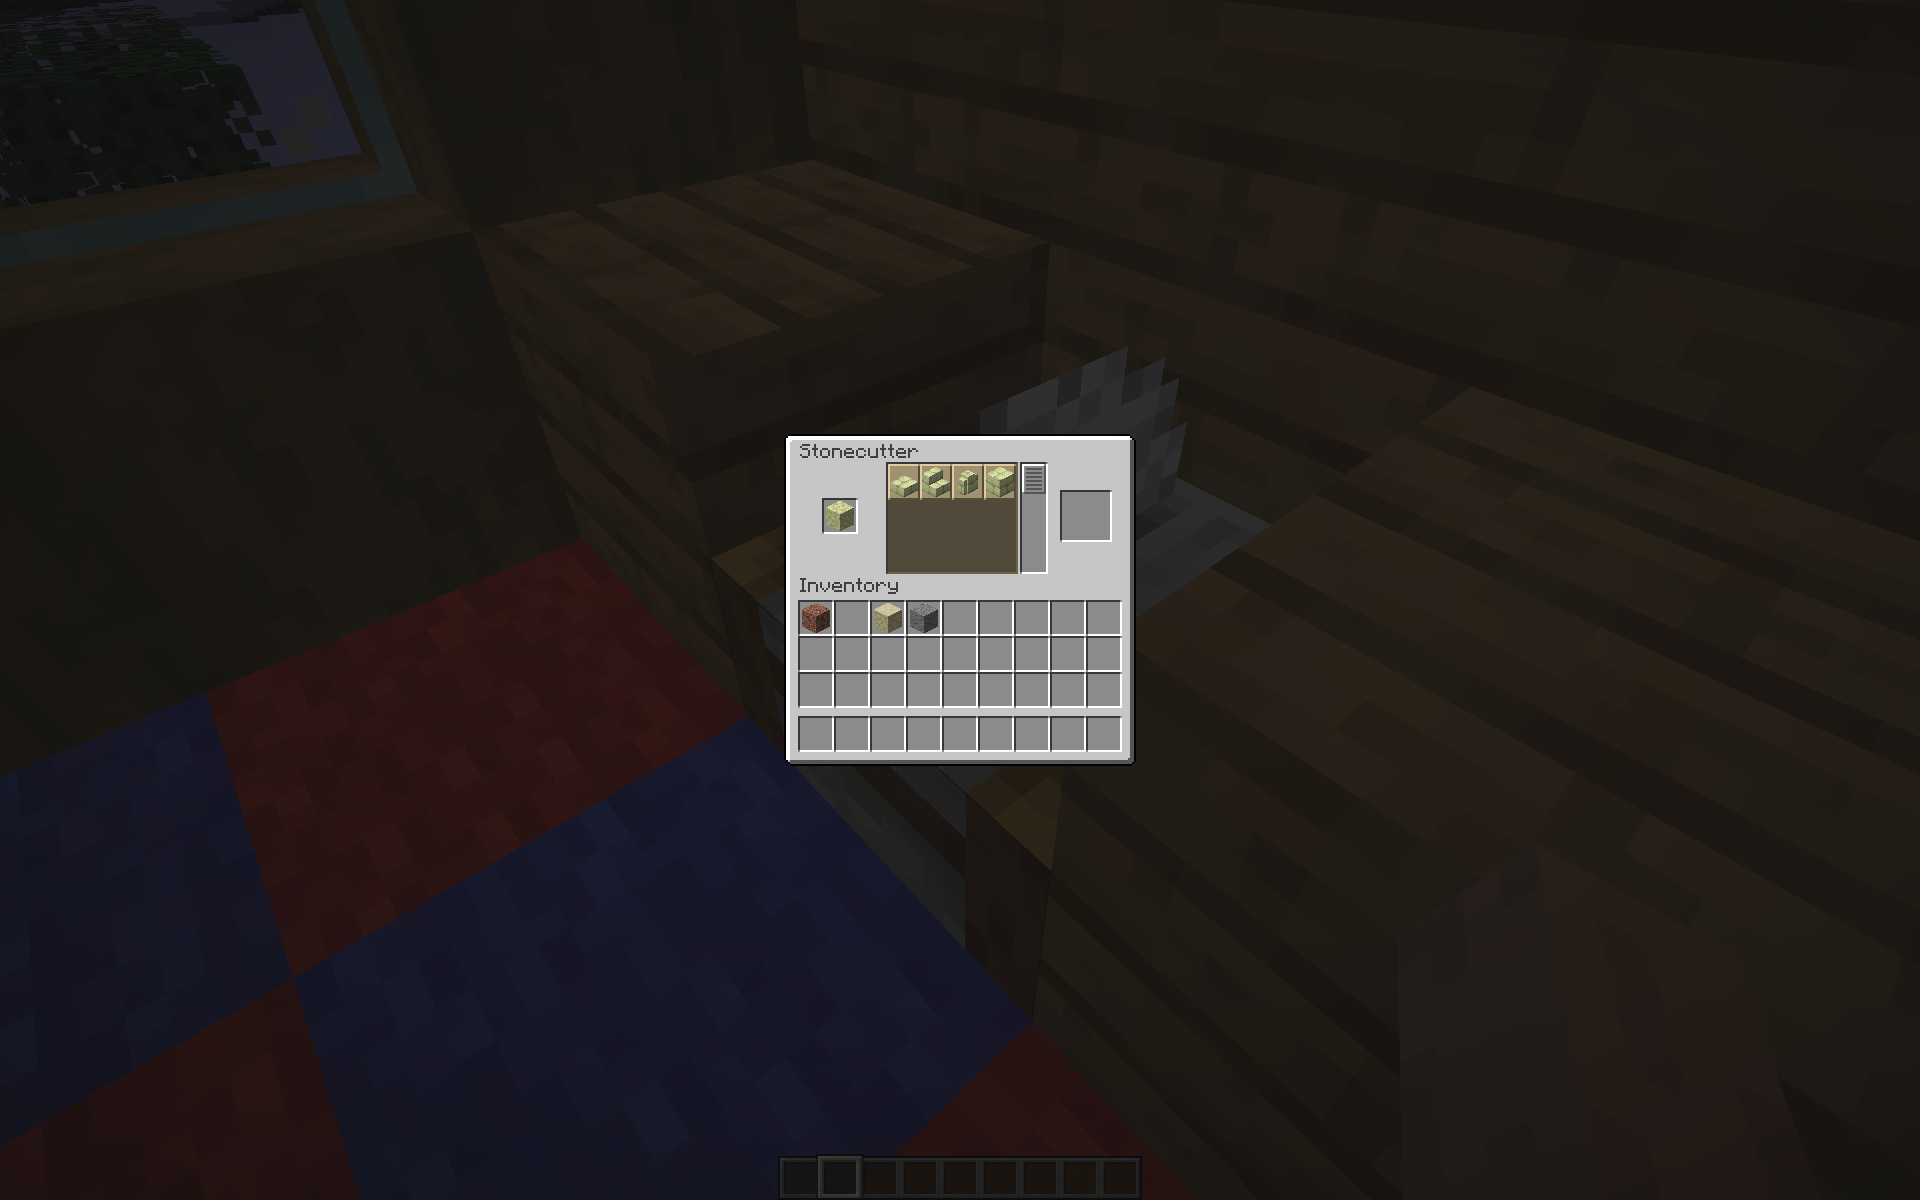 [MC-195995] End Stone stonecutter recipes are incorrectly ...